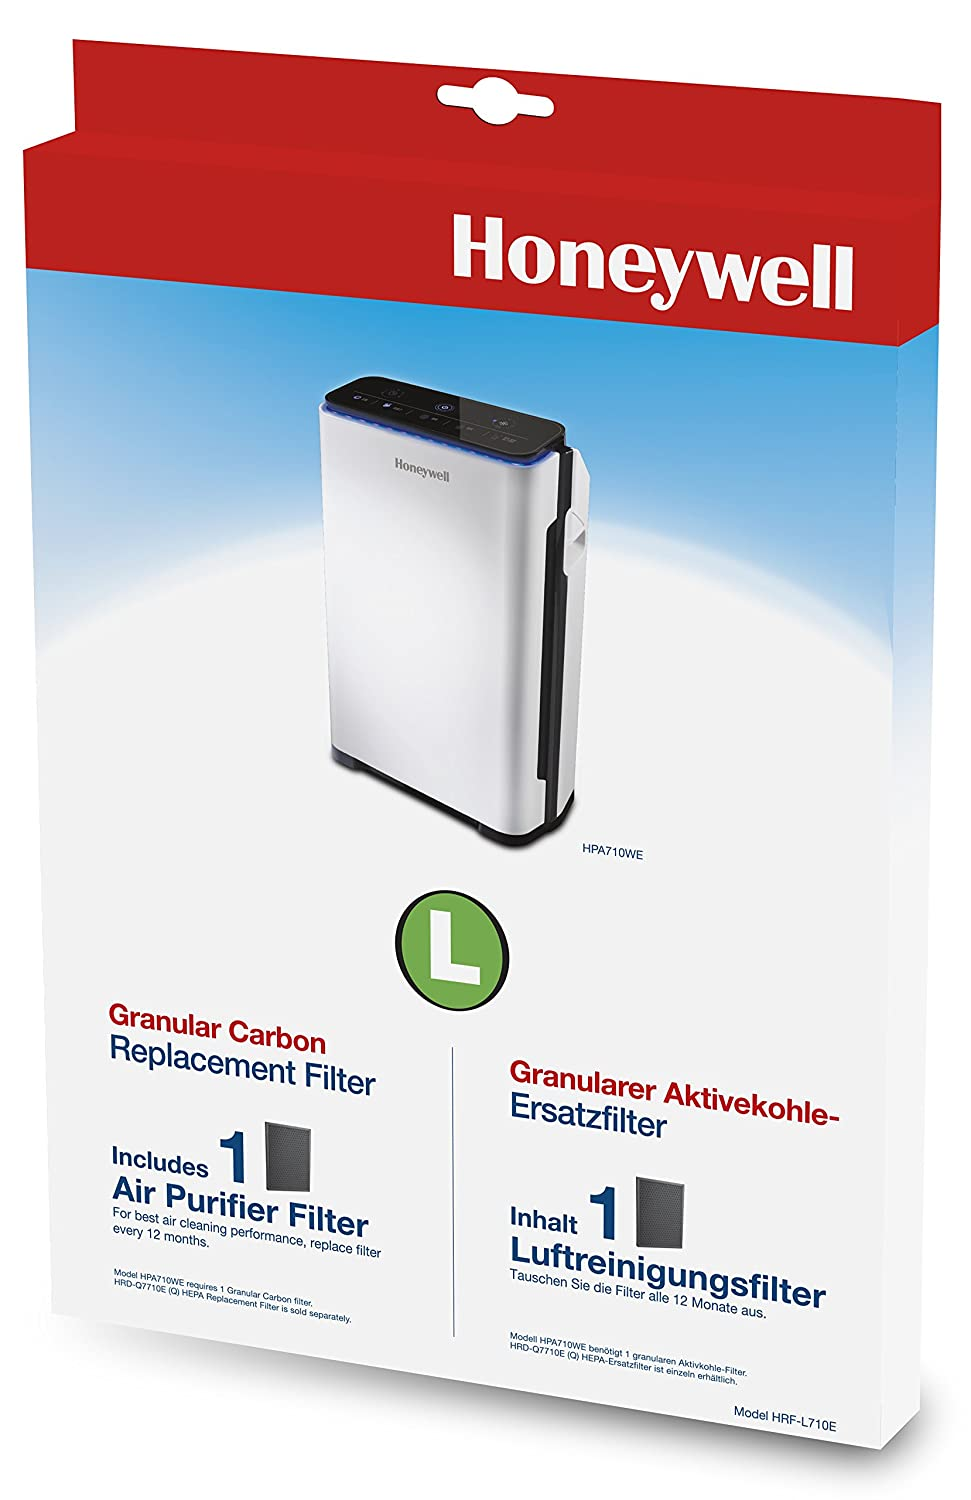 Honeywell HRF-L710E Carbon Filter Compatible with HPA710WE Air Purifier Helen of Troy